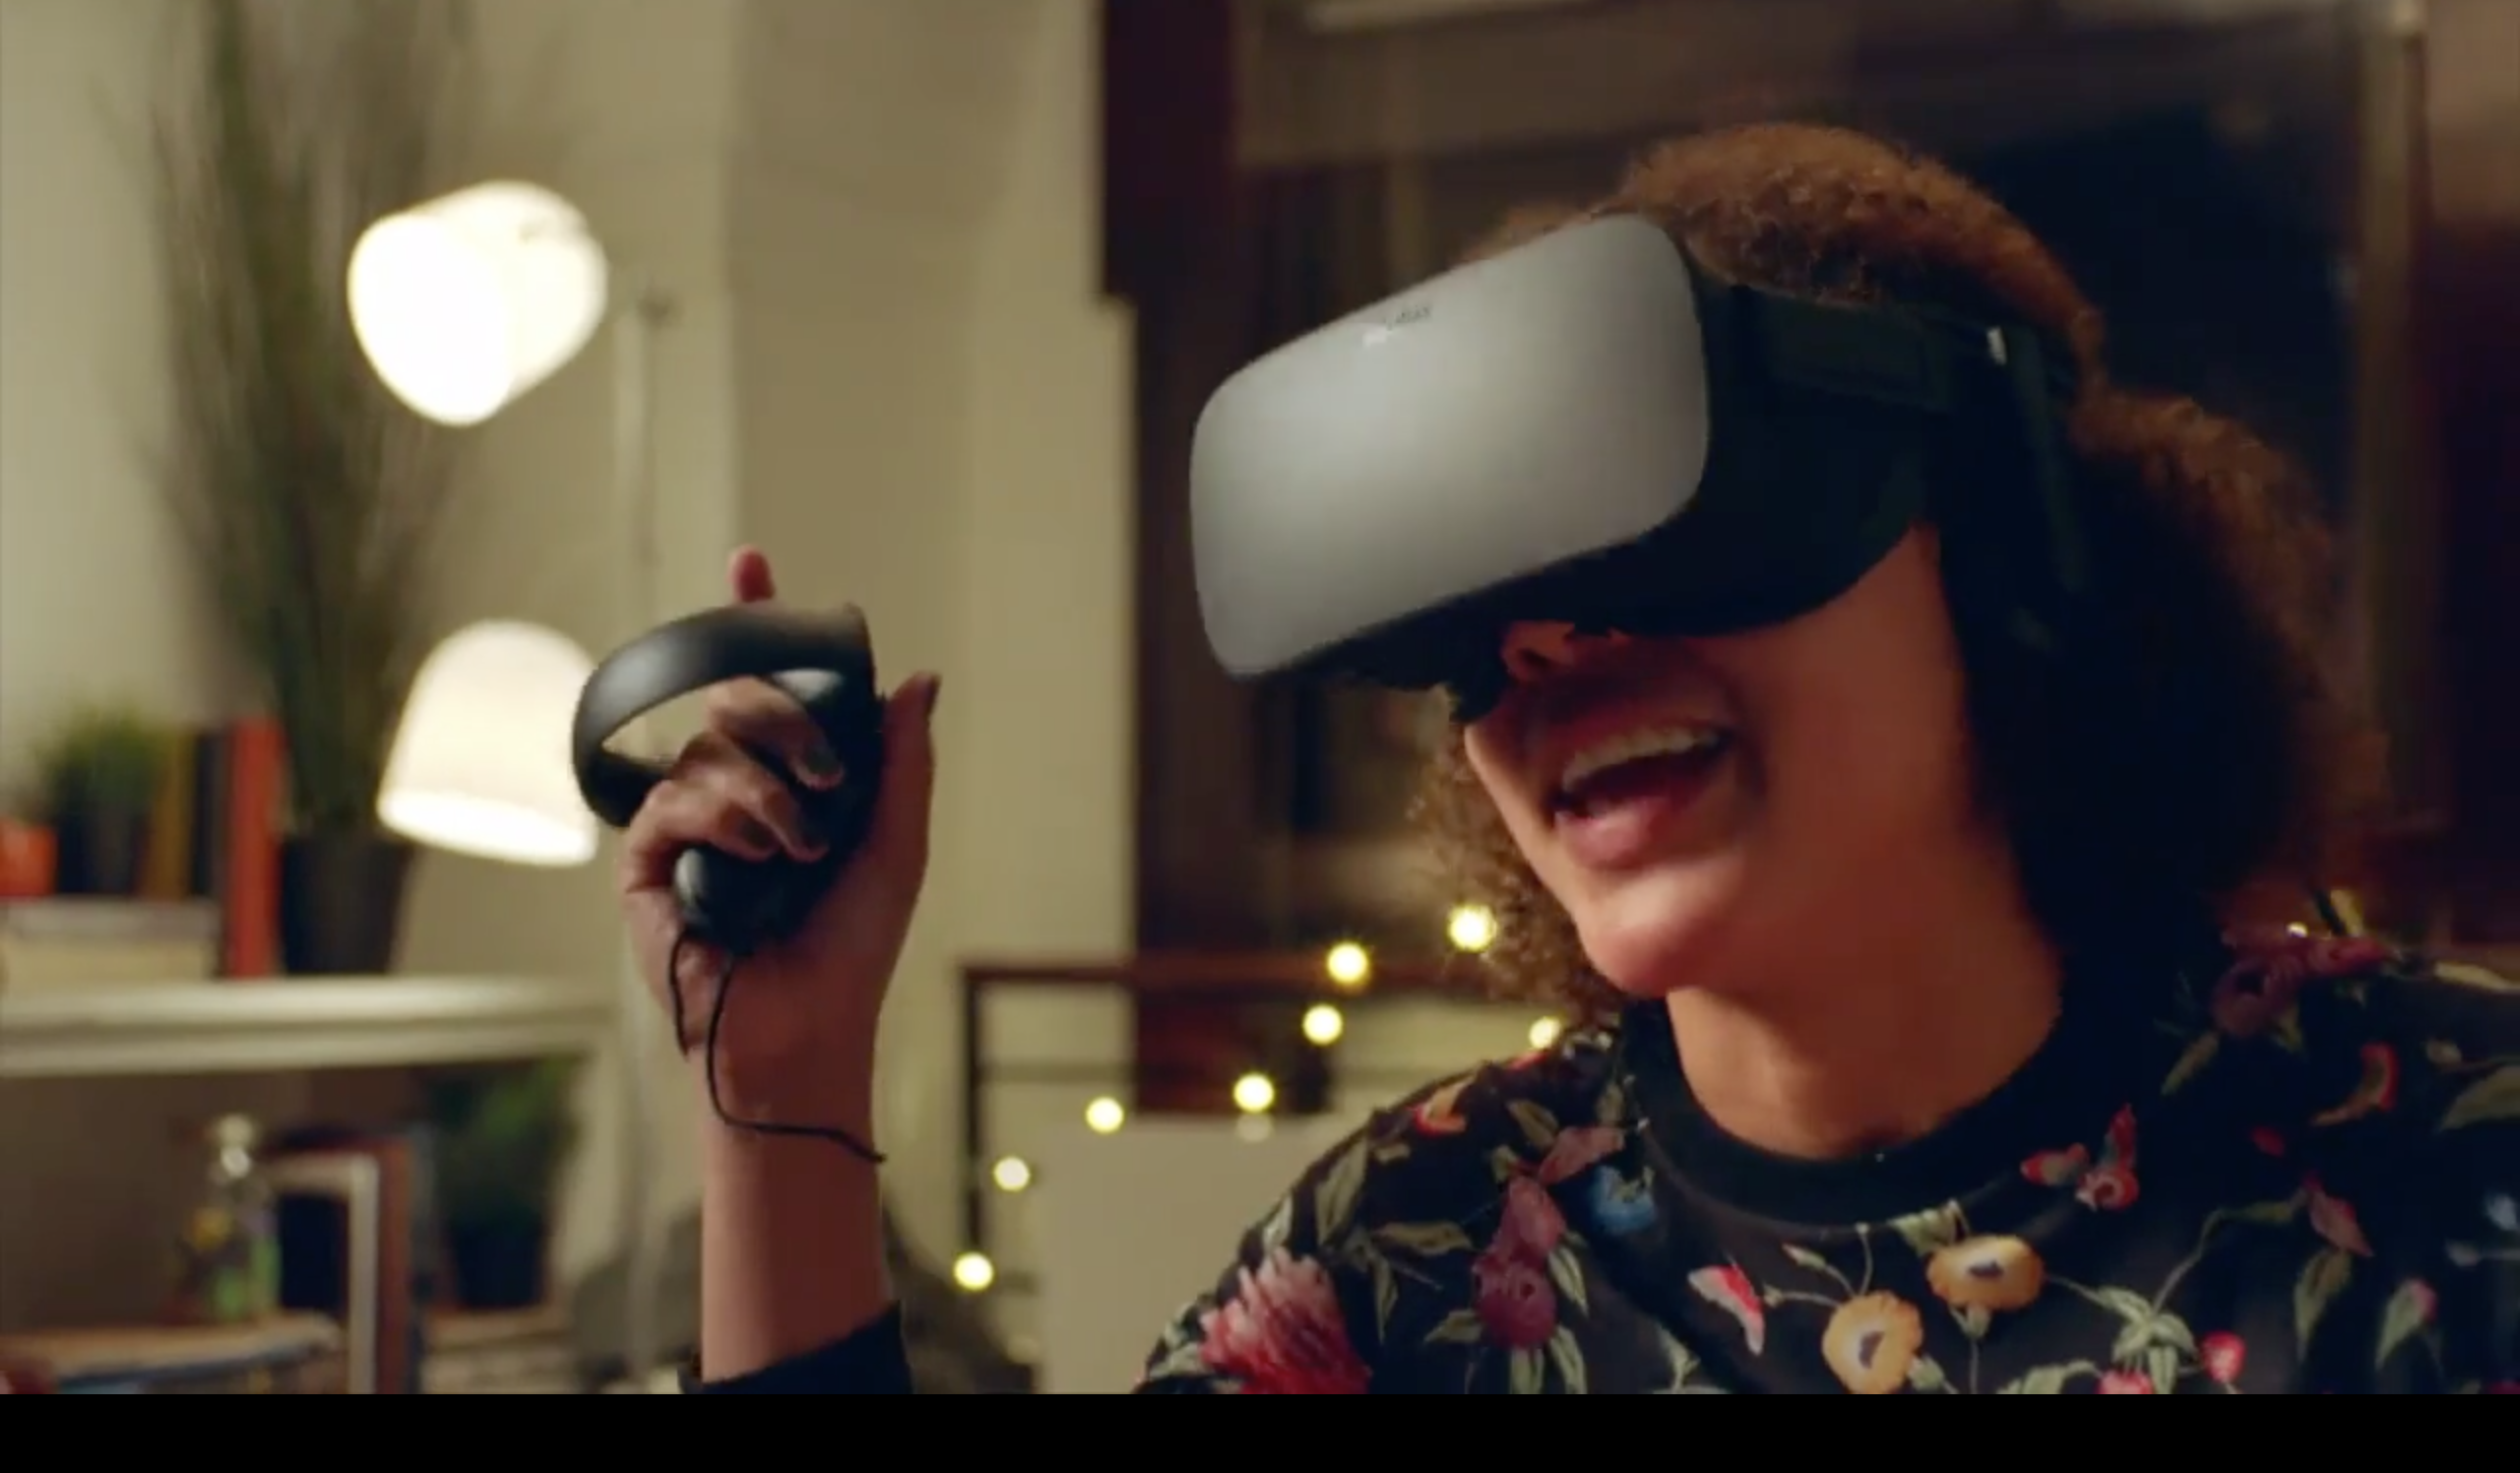 Facebook's Oculus cuts price again on virtual reality headset